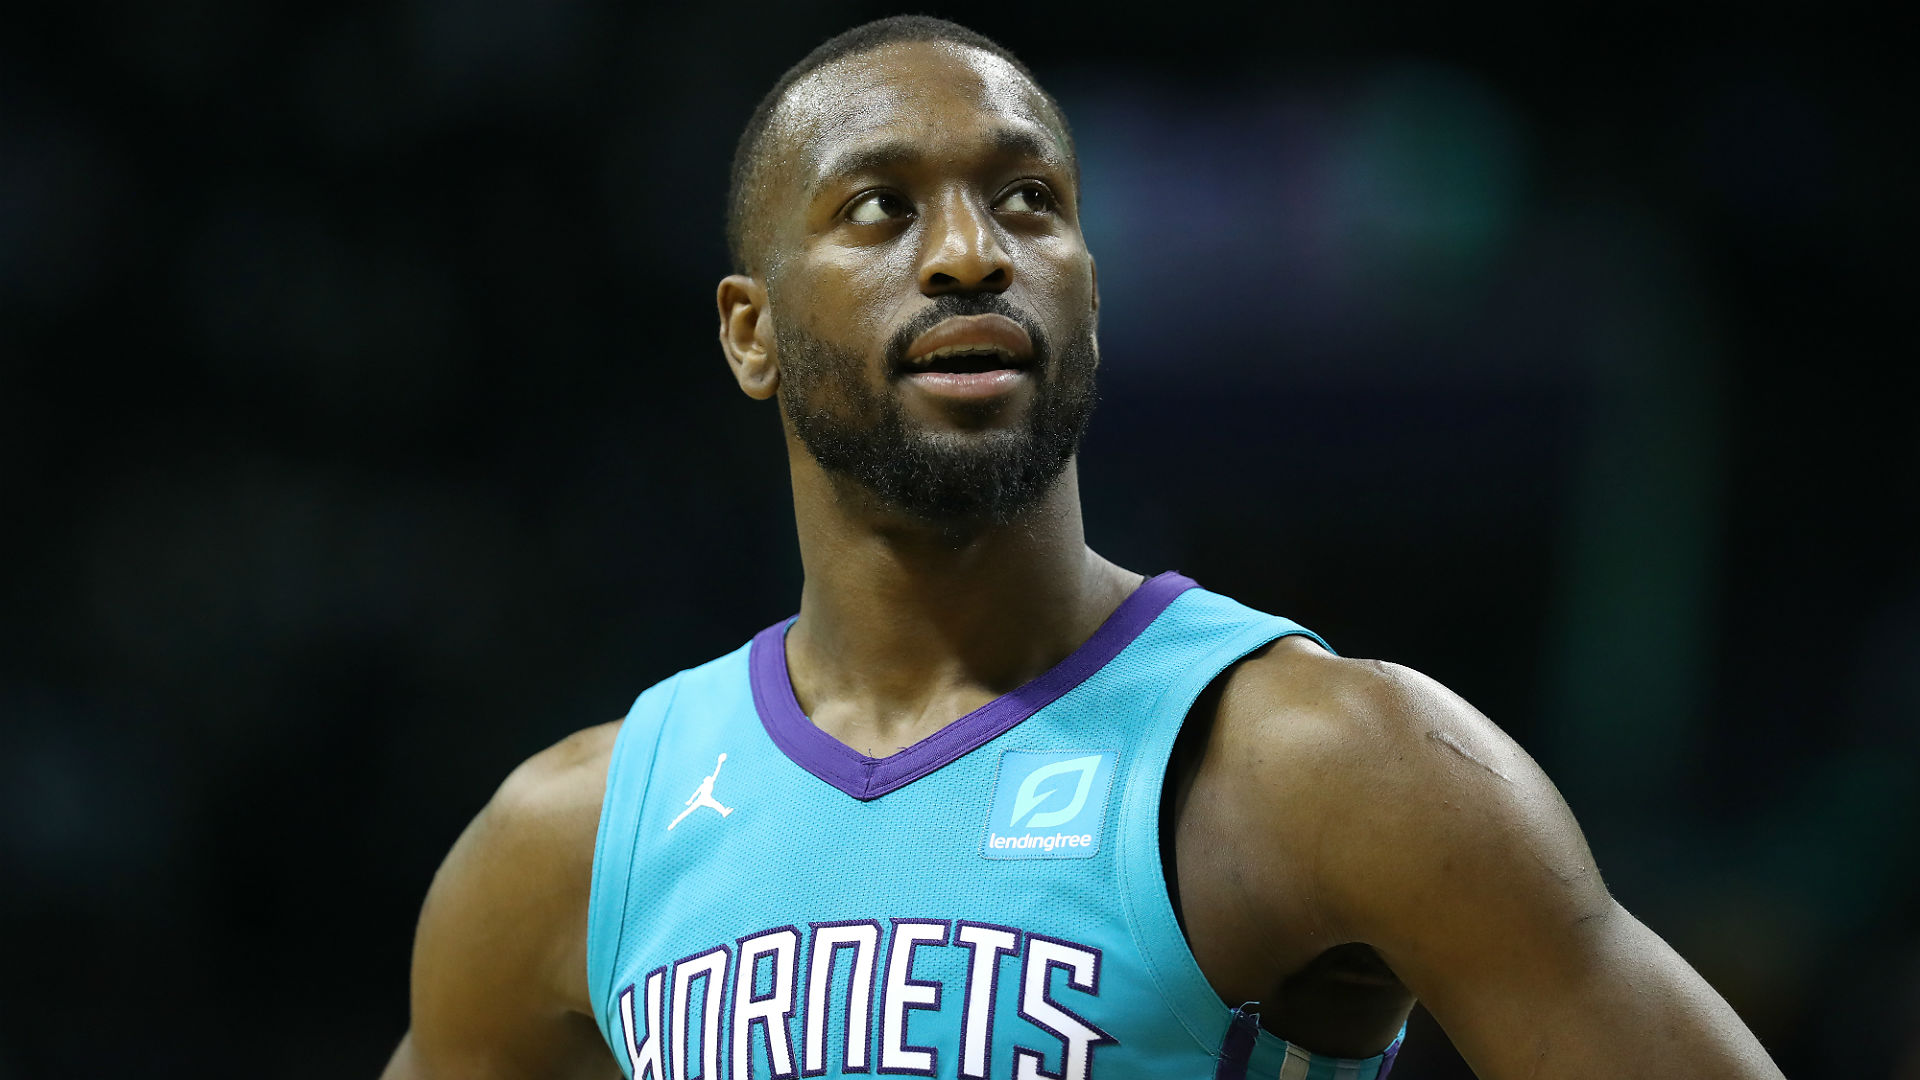 NBA free agency news: Kemba Walker willing to take less money to stay with Hornets